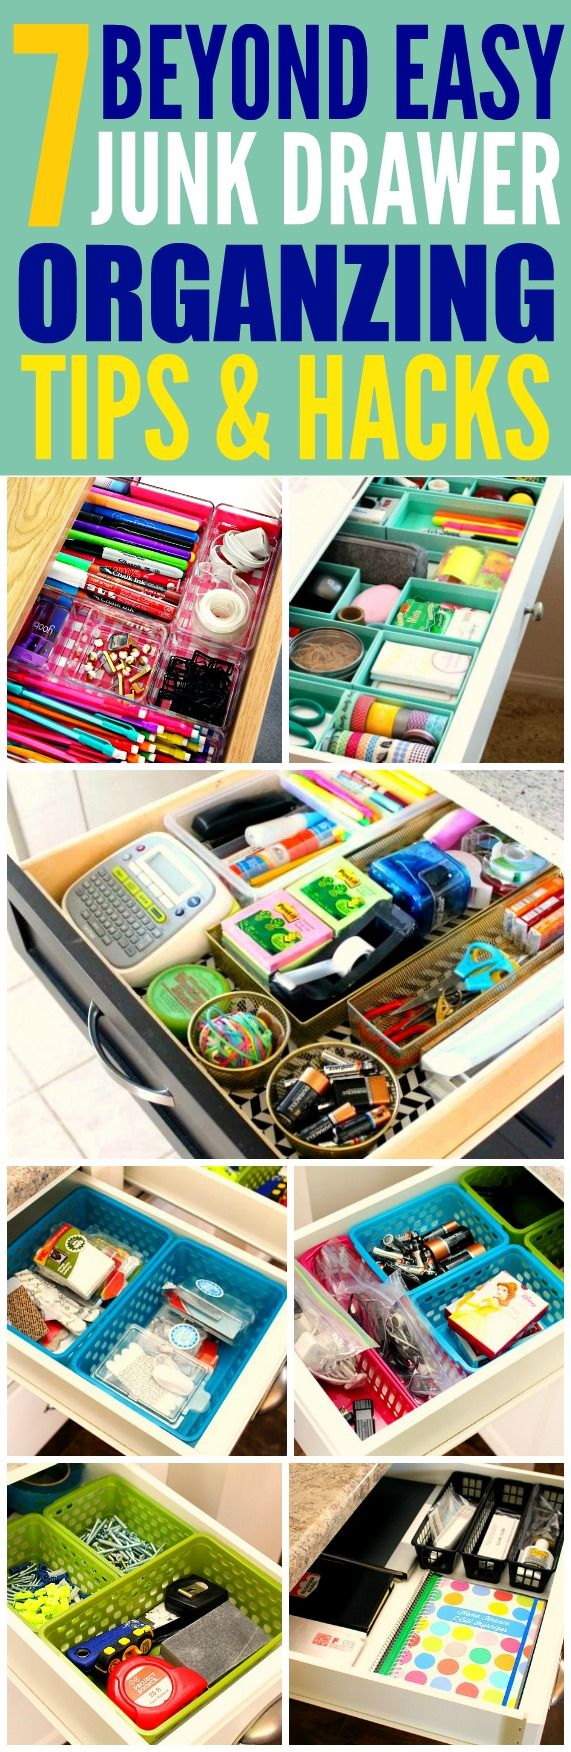 These 7 junk drawer organizing tips and hacks are THE BEST! I'm so glad I found these AWESOME tips! Now I have some ways to clean up the mess in my drawers! Definitely pinning for later!